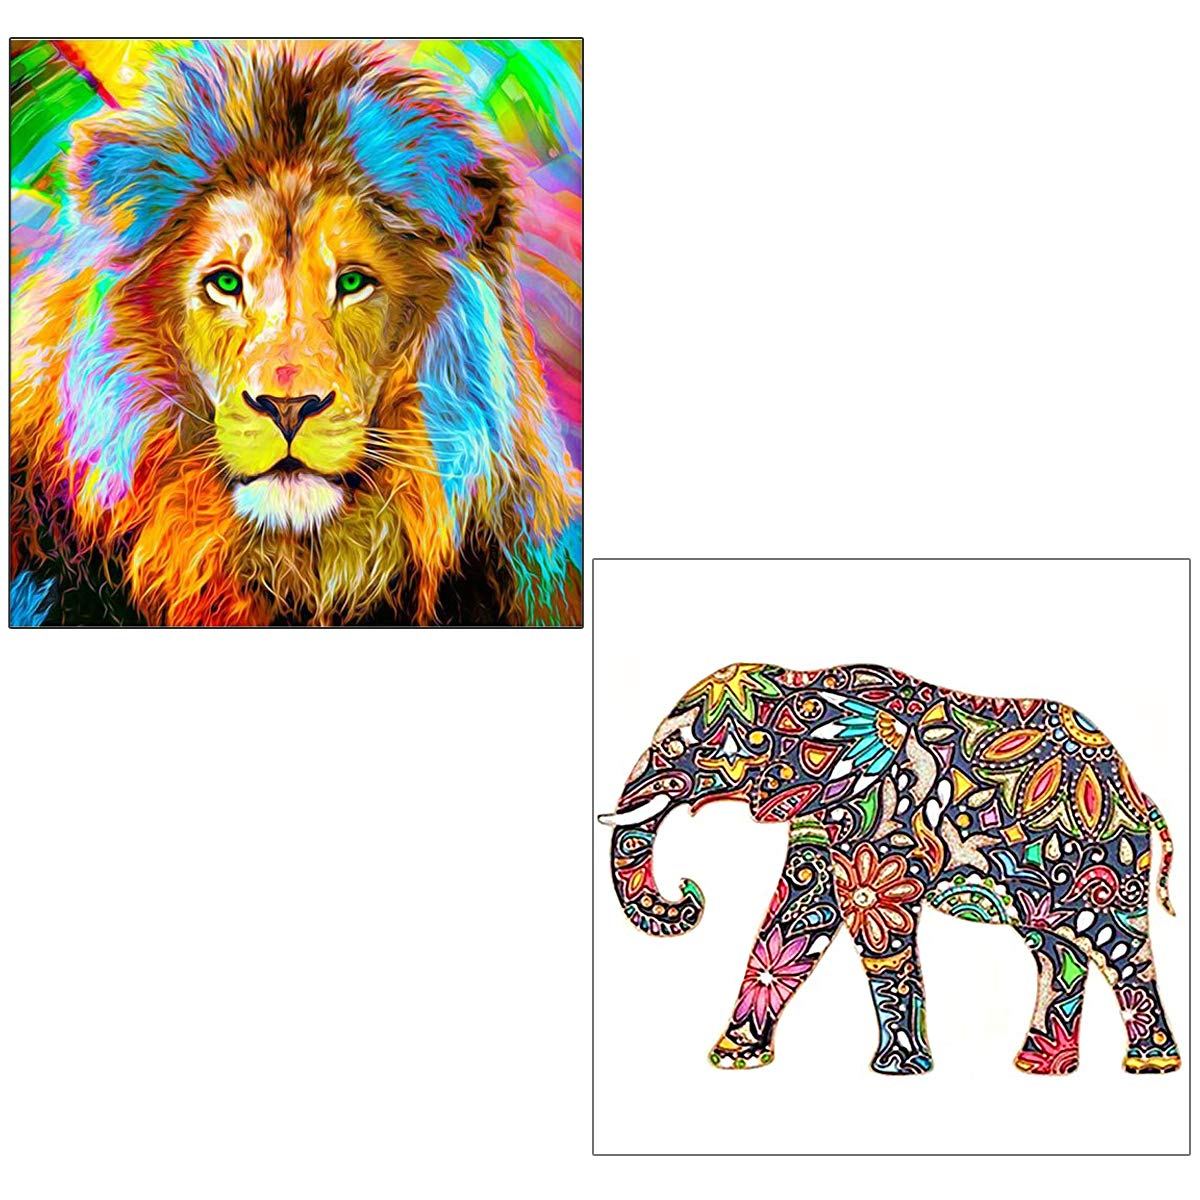 AUGSHY 5D Diamond Painting Kit, 2 Pack 12 x 12 inch Lion and Elephant Full Drill Cross Stitch for Home Wall Decor Arts Craft